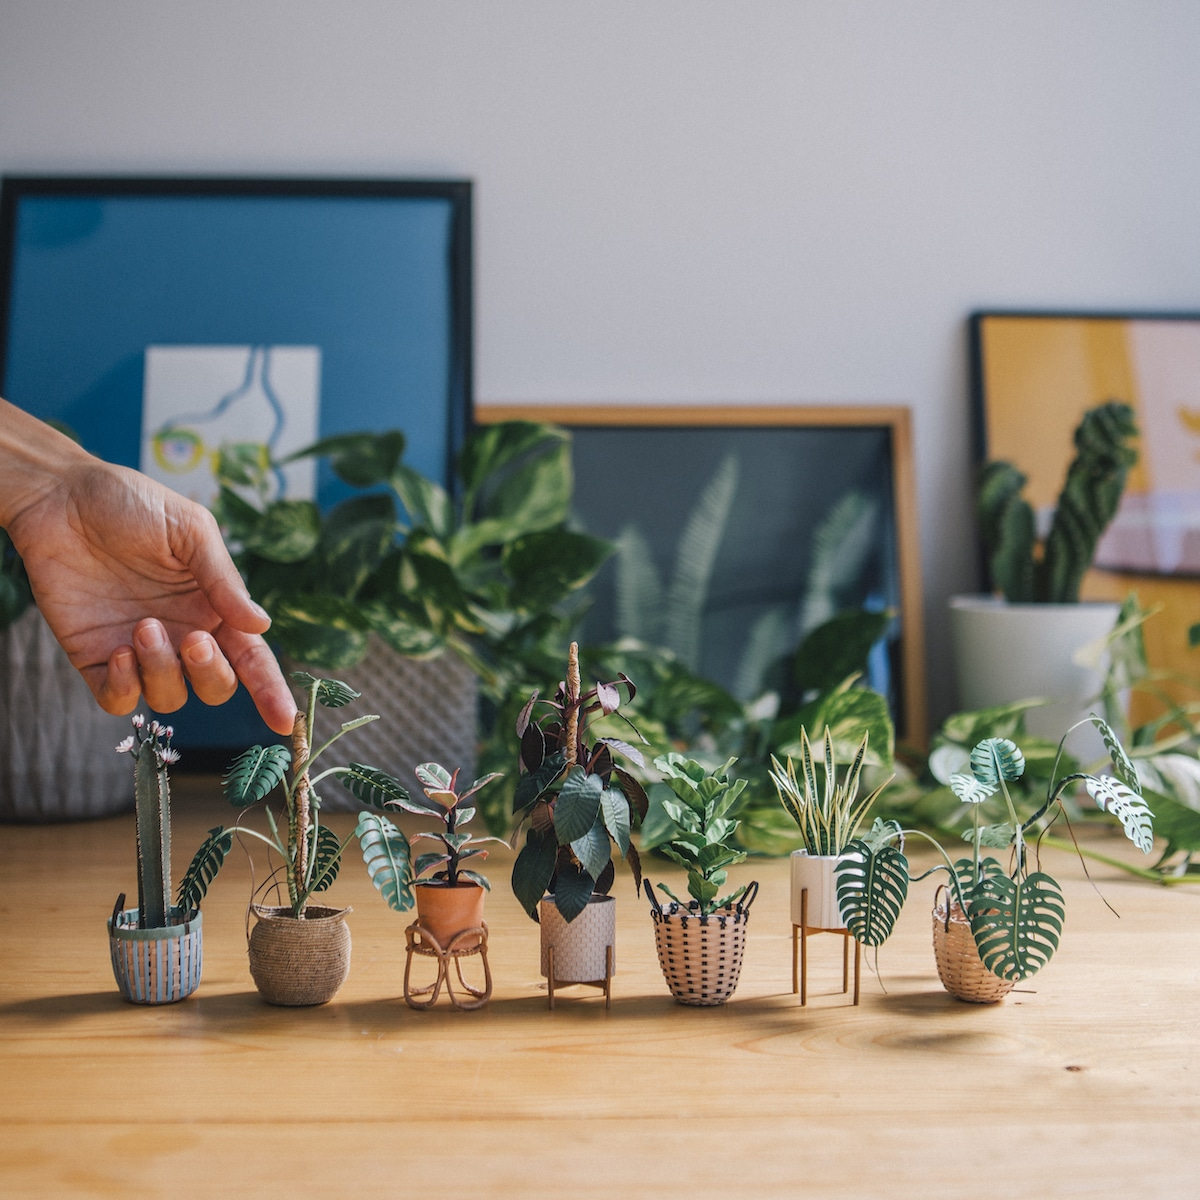 Paper Artist Creates Handmade Plant Sculptures That Fit On Your Fingers